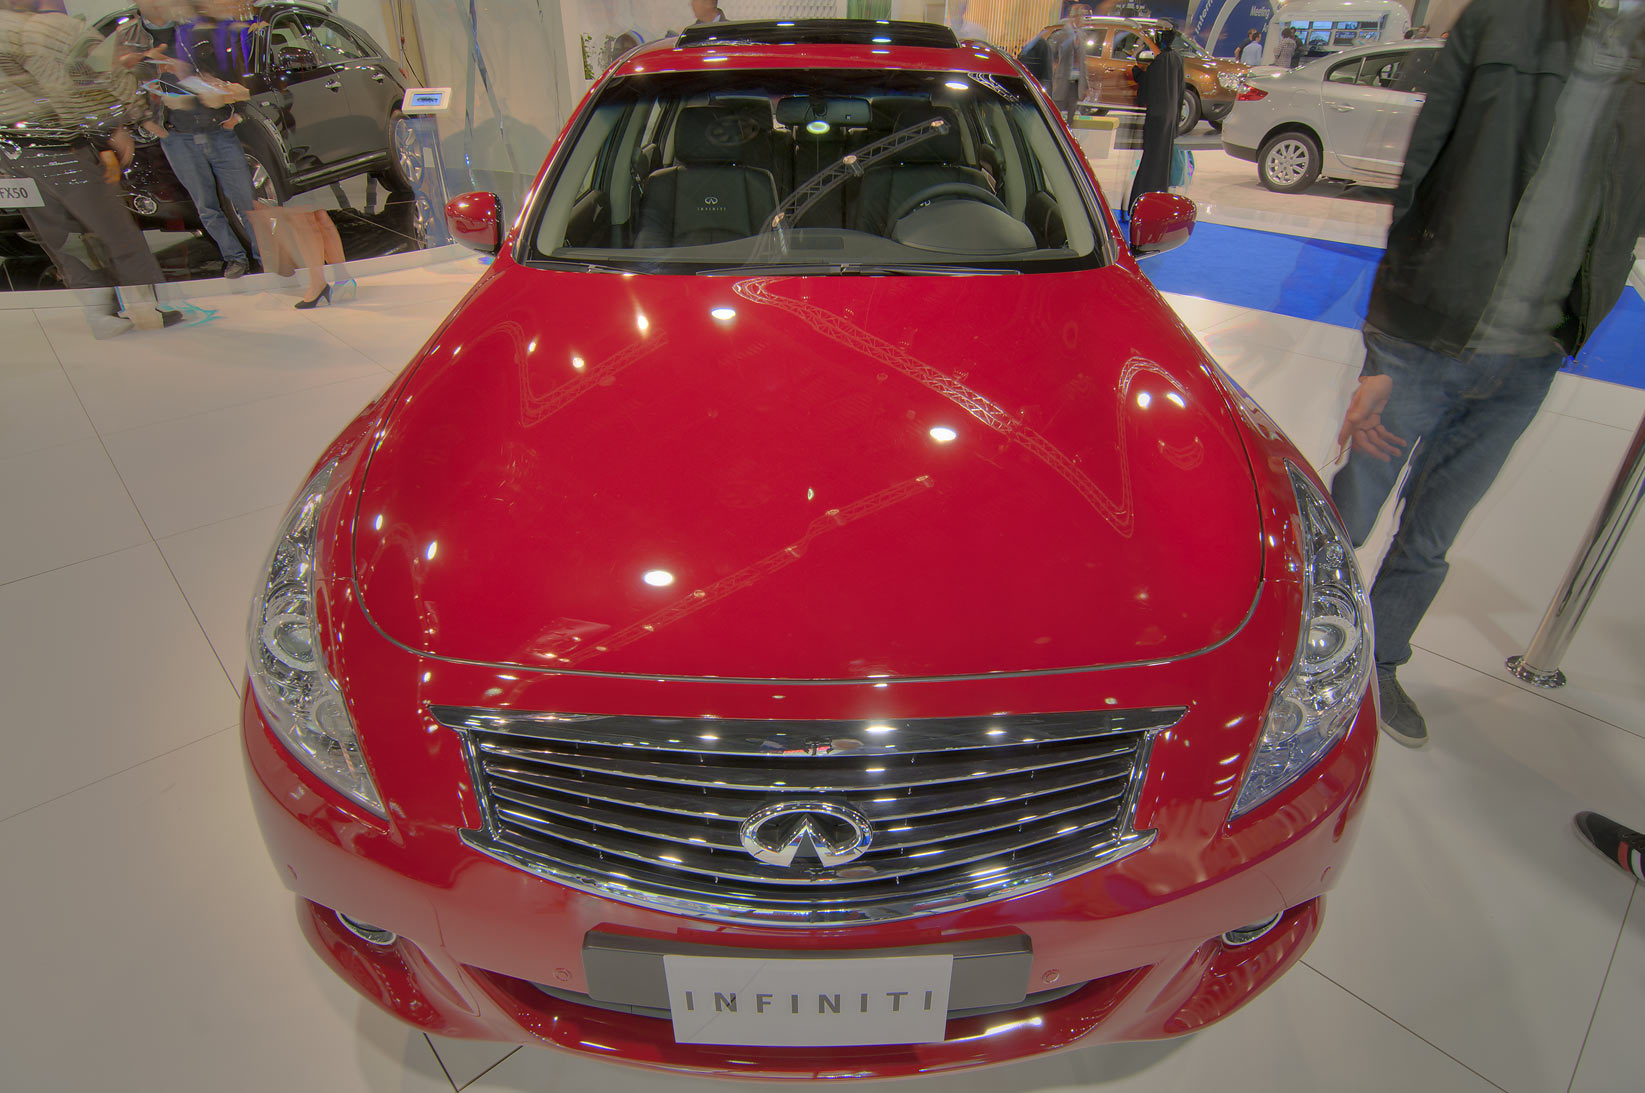 "Red car ""Infinity"" at Qatar Motor Show. Doha, Qatar"